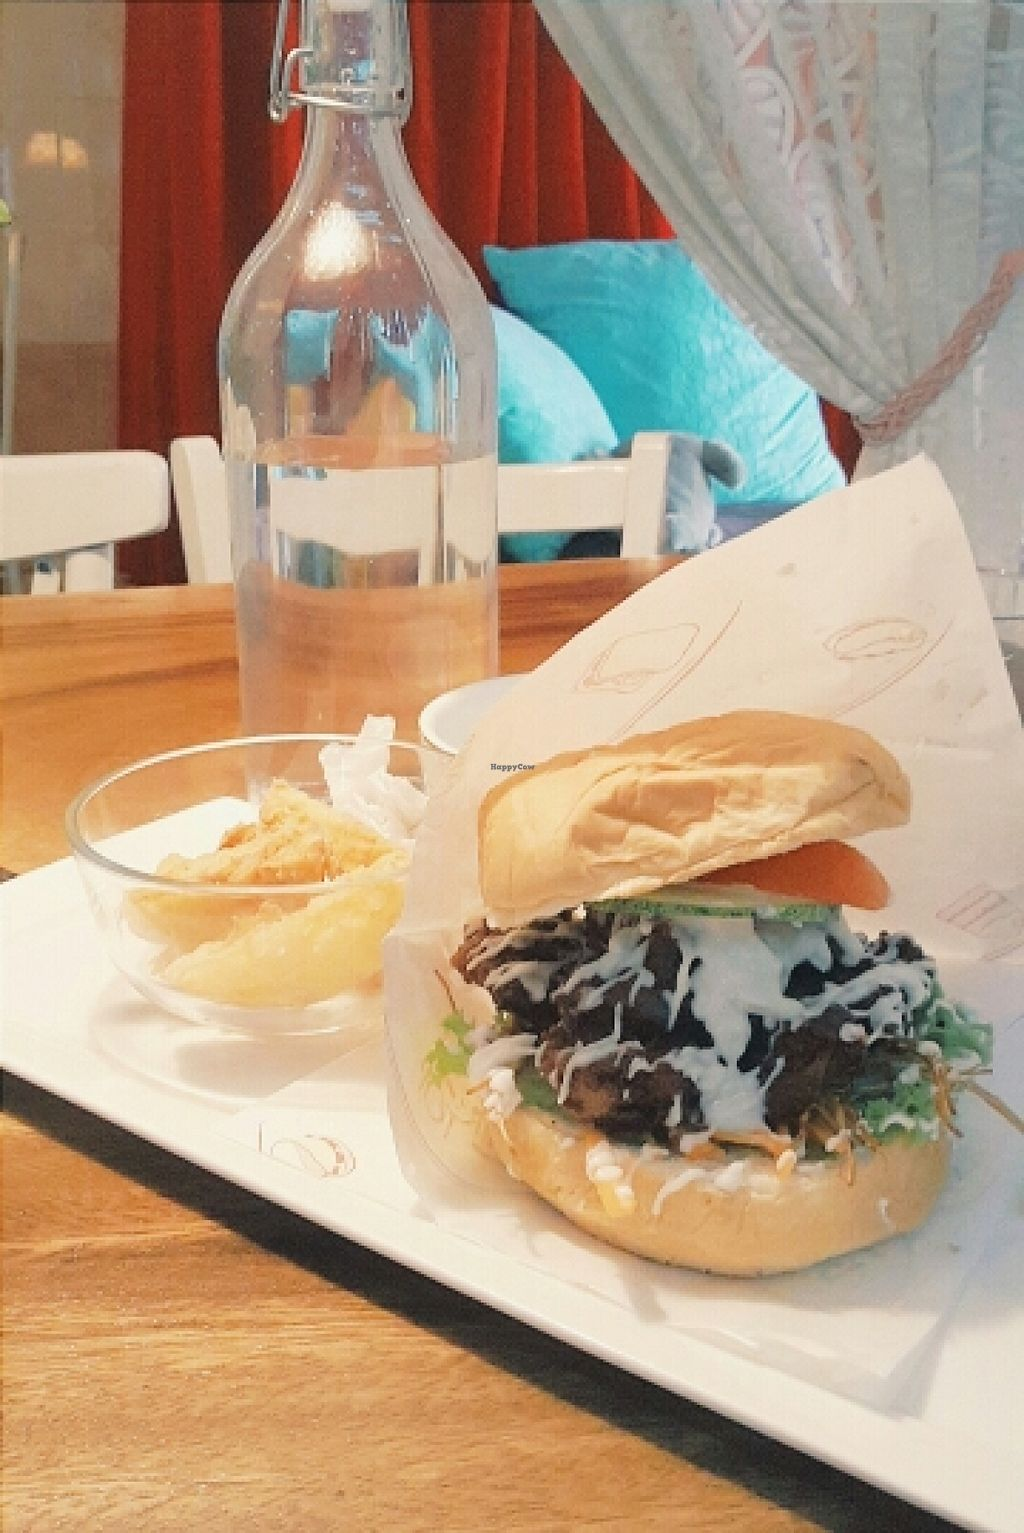 """Photo of Cloud Dreaming  by <a href=""""/members/profile/sarararah"""">sarararah</a> <br/>tofu burger and fries <br/> March 3, 2016  - <a href='/contact/abuse/image/48096/138680'>Report</a>"""